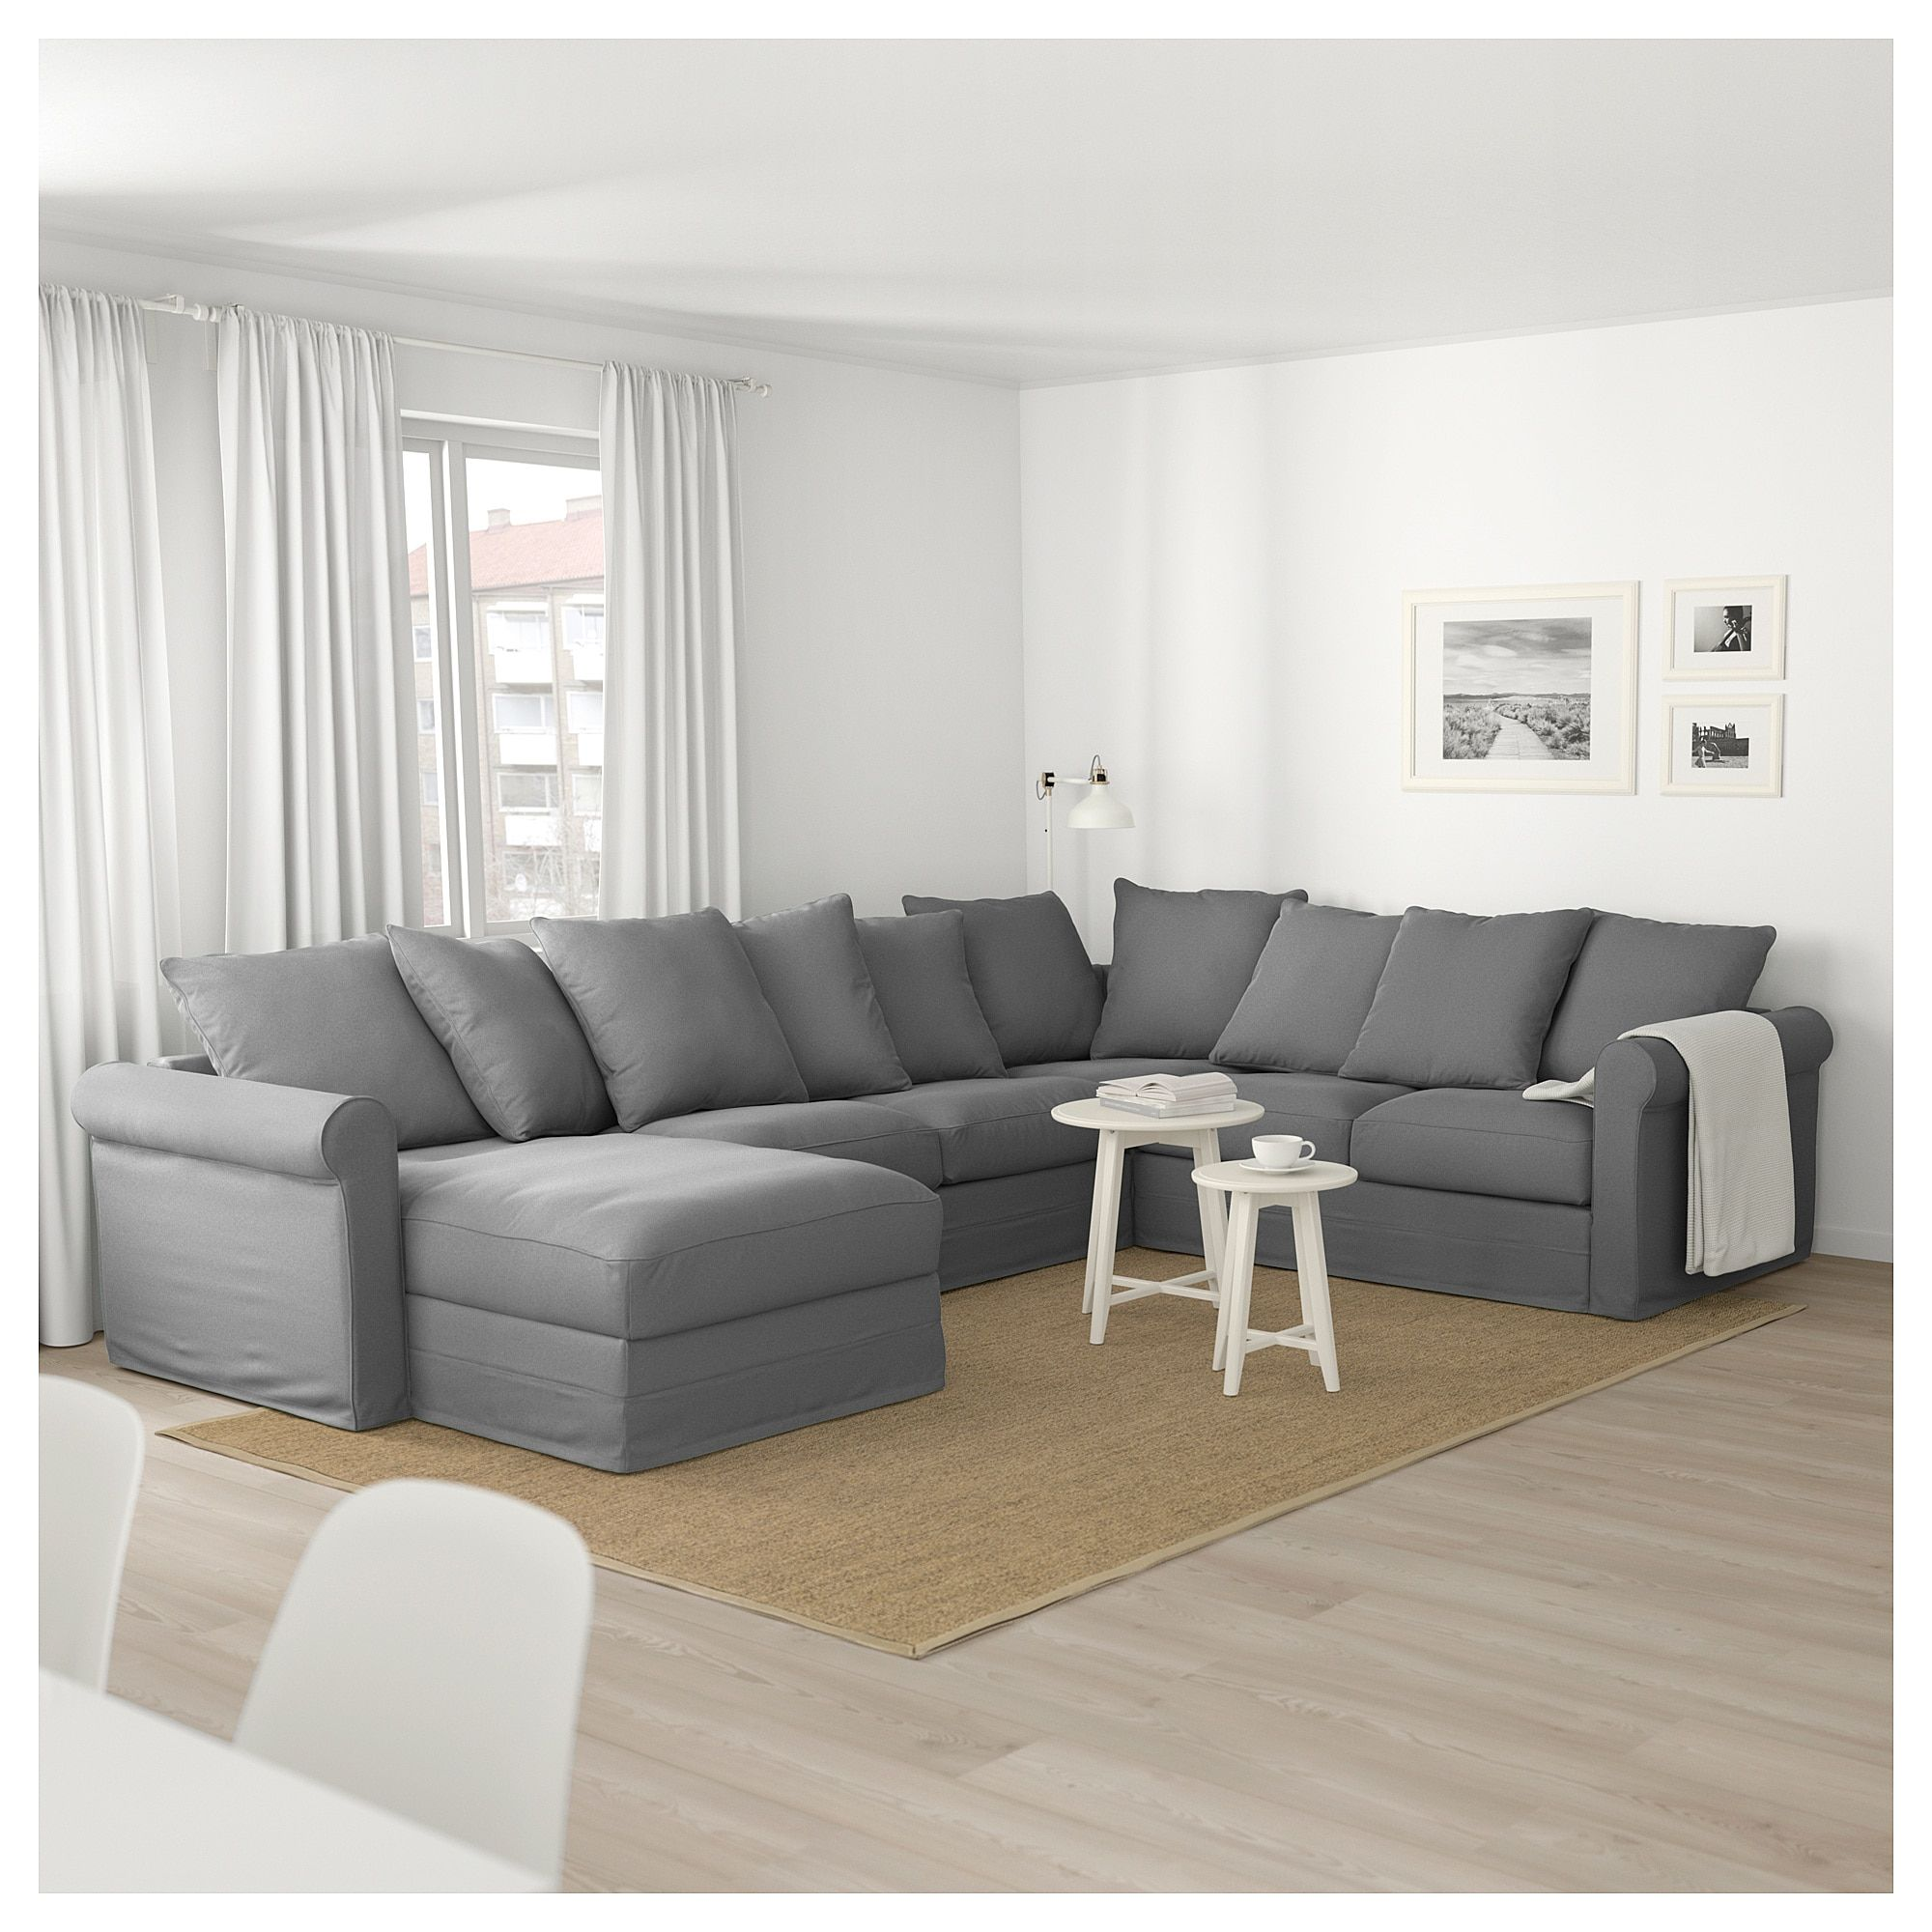 Furniture And Home Furnishings With Images Living Room Shades Living Room Paint Interior Paint Colors